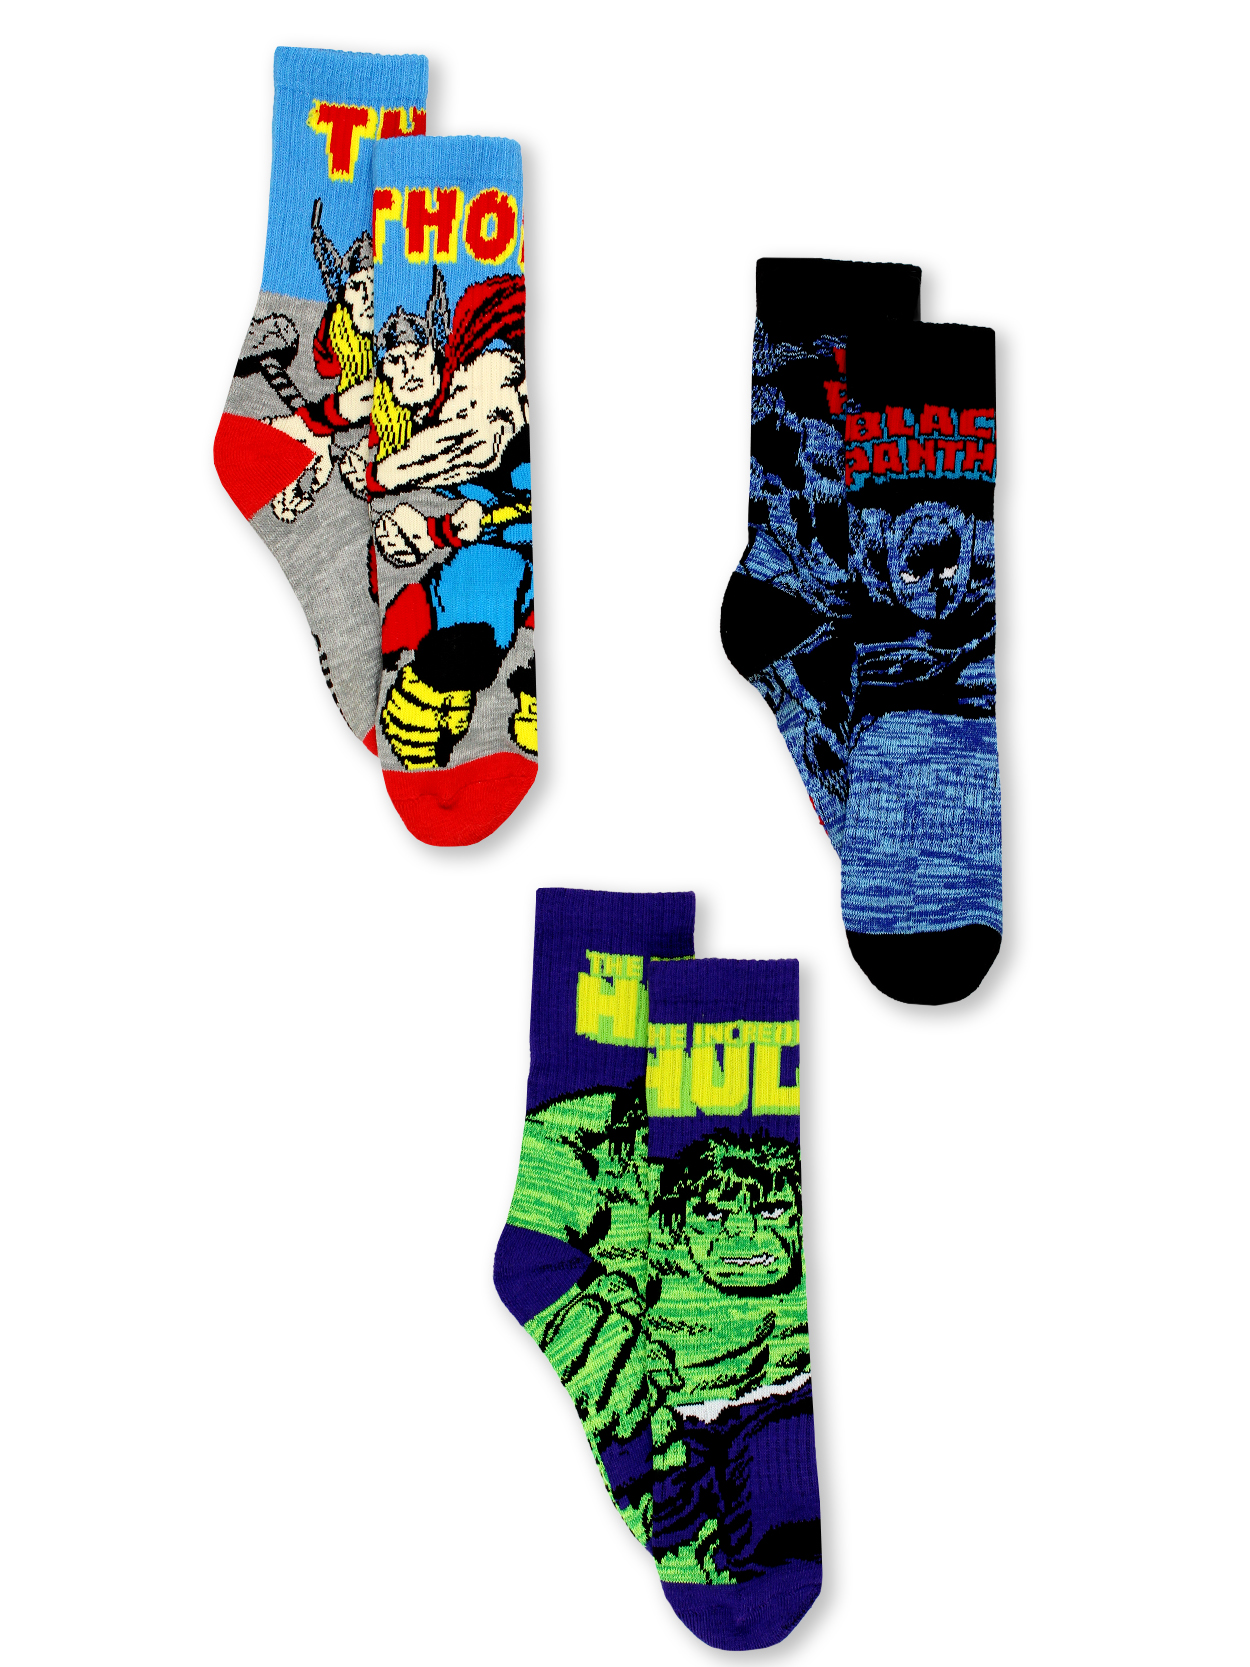 3 MARVEL Socks for S~M size,Birthday Gifts.